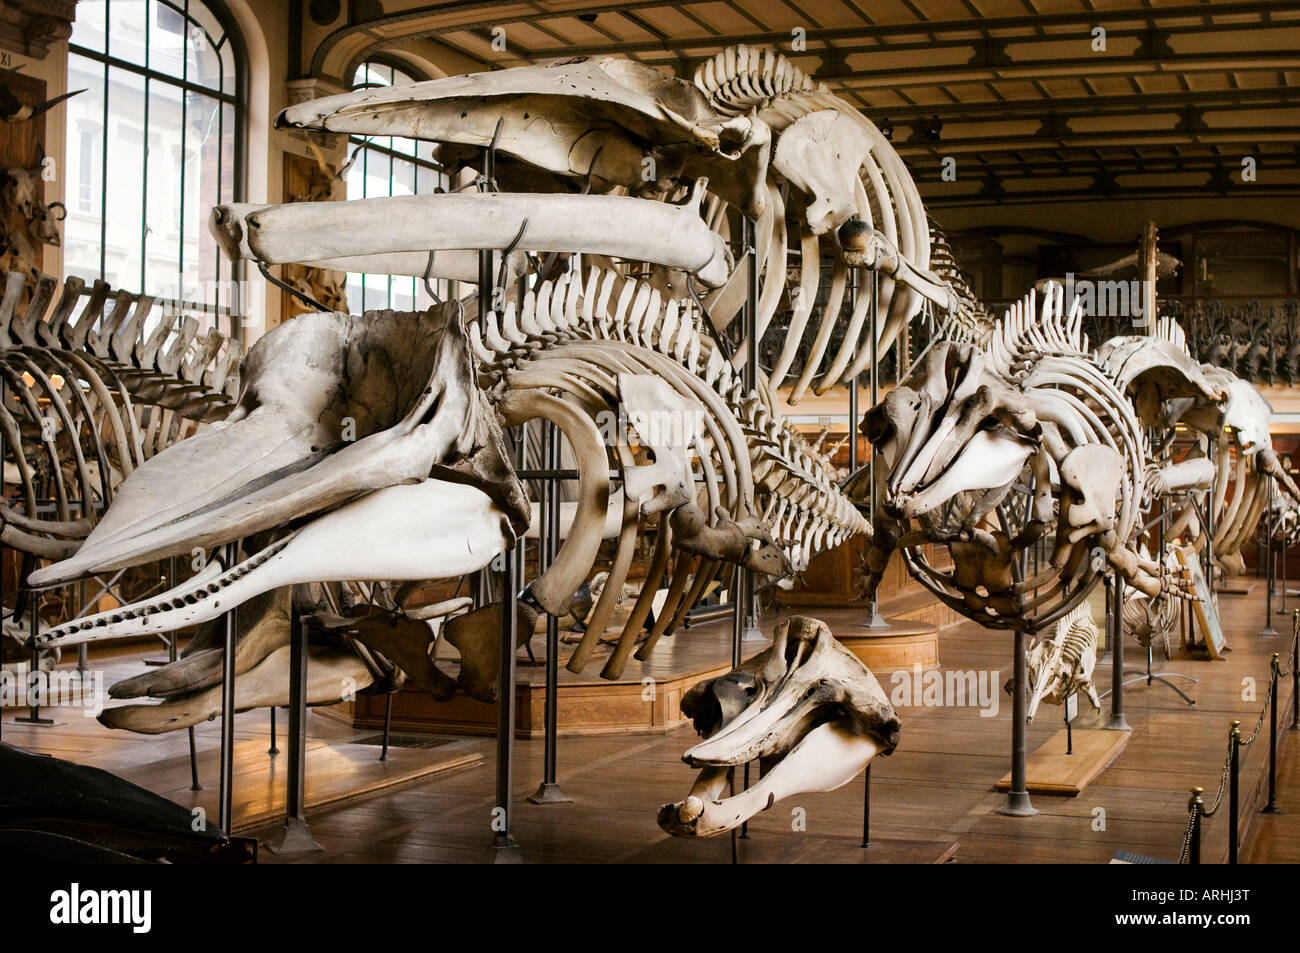 An exhibition of bones and skeletons in the Paleontology and Comparative Anatomy Gallery Natural History Museum - Stock Image